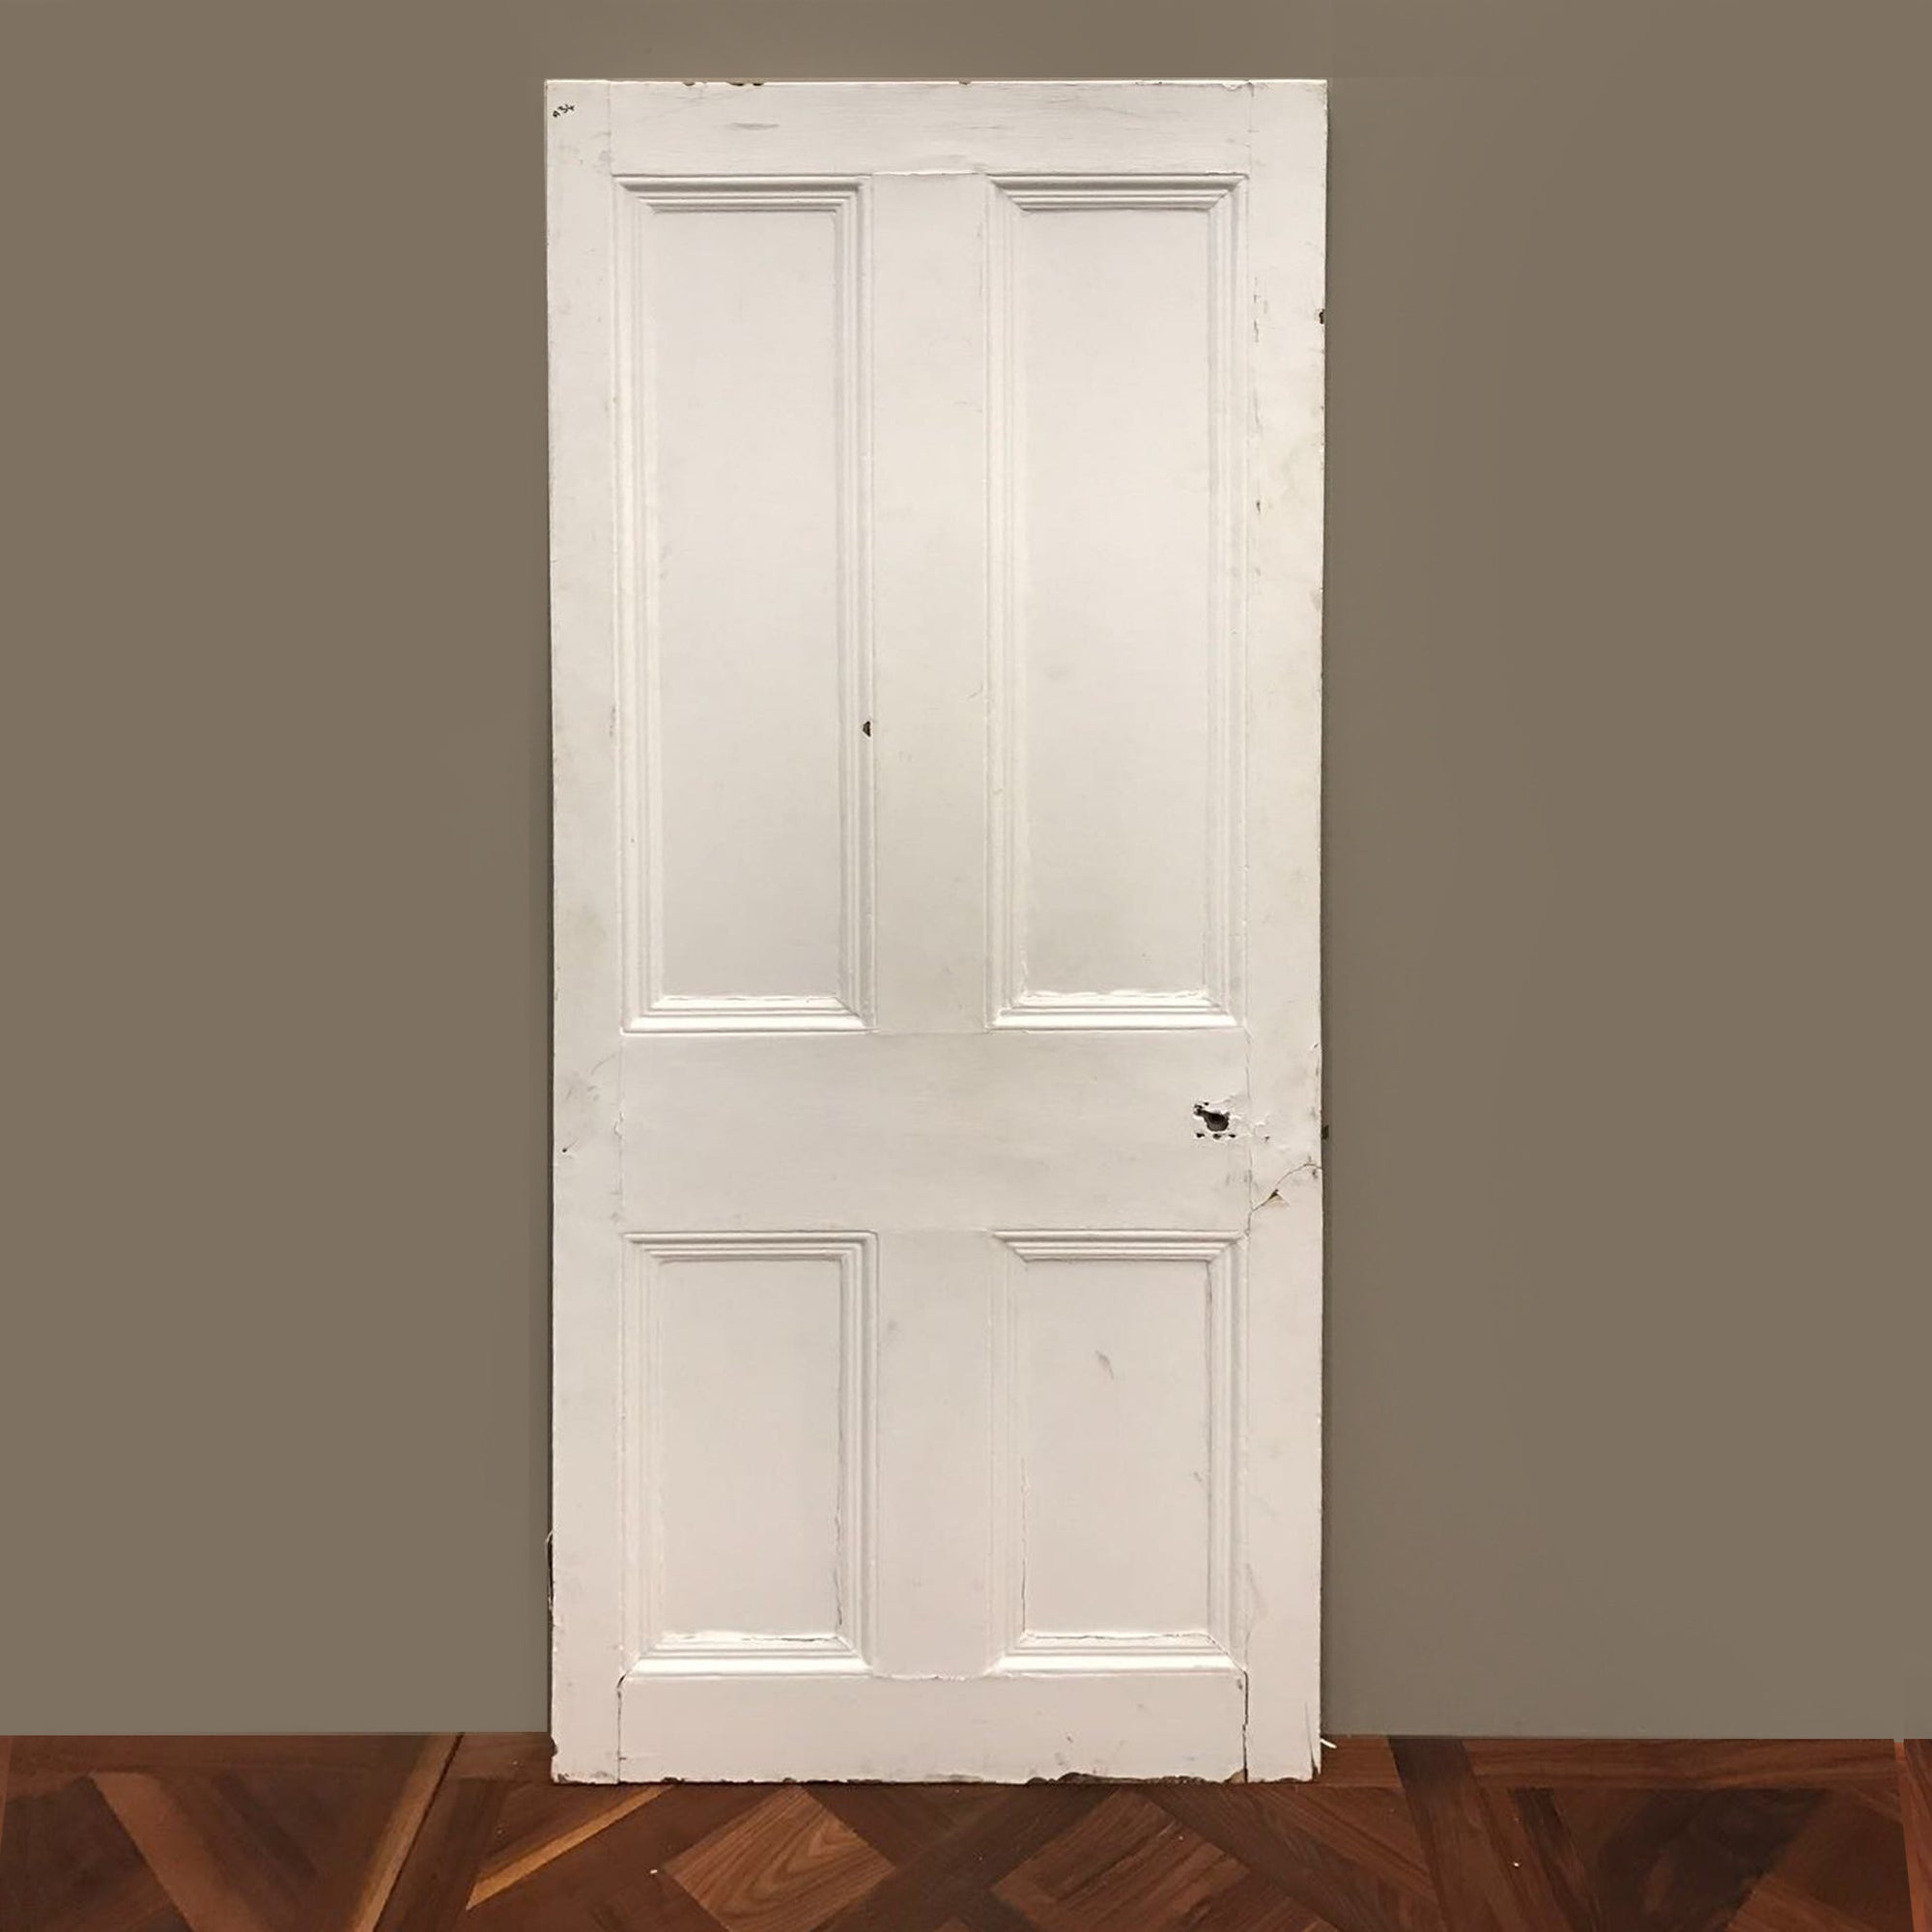 Victorian Four Panel Door - 195cm x 75.5cm - architectural-forum